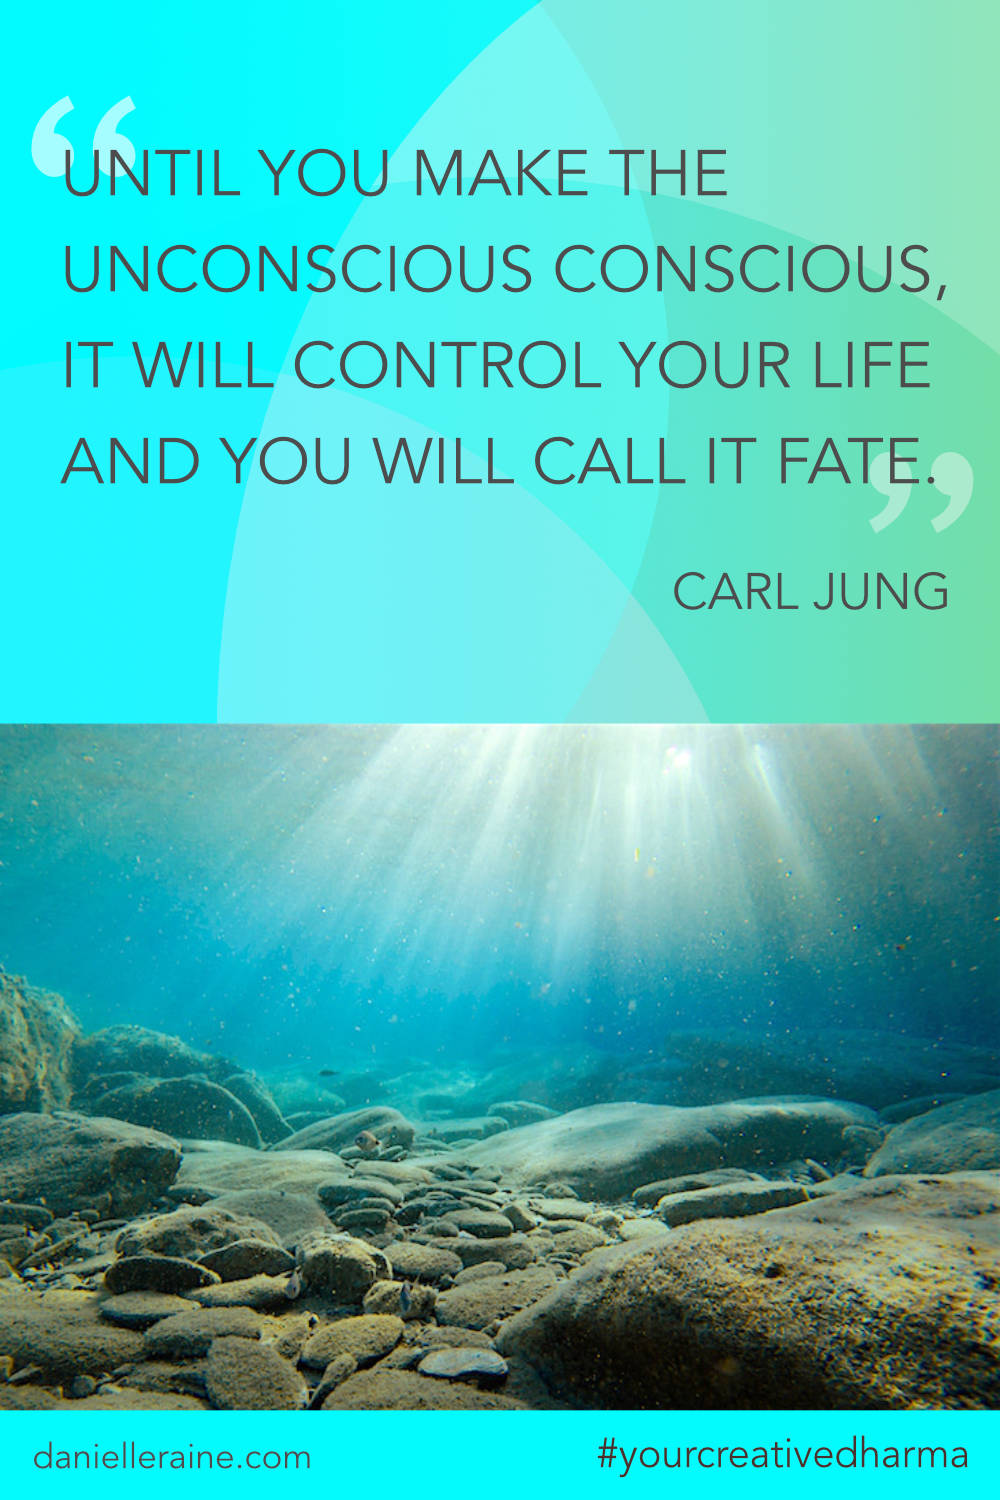 Your Creative Dharma quote carl jung unconscious